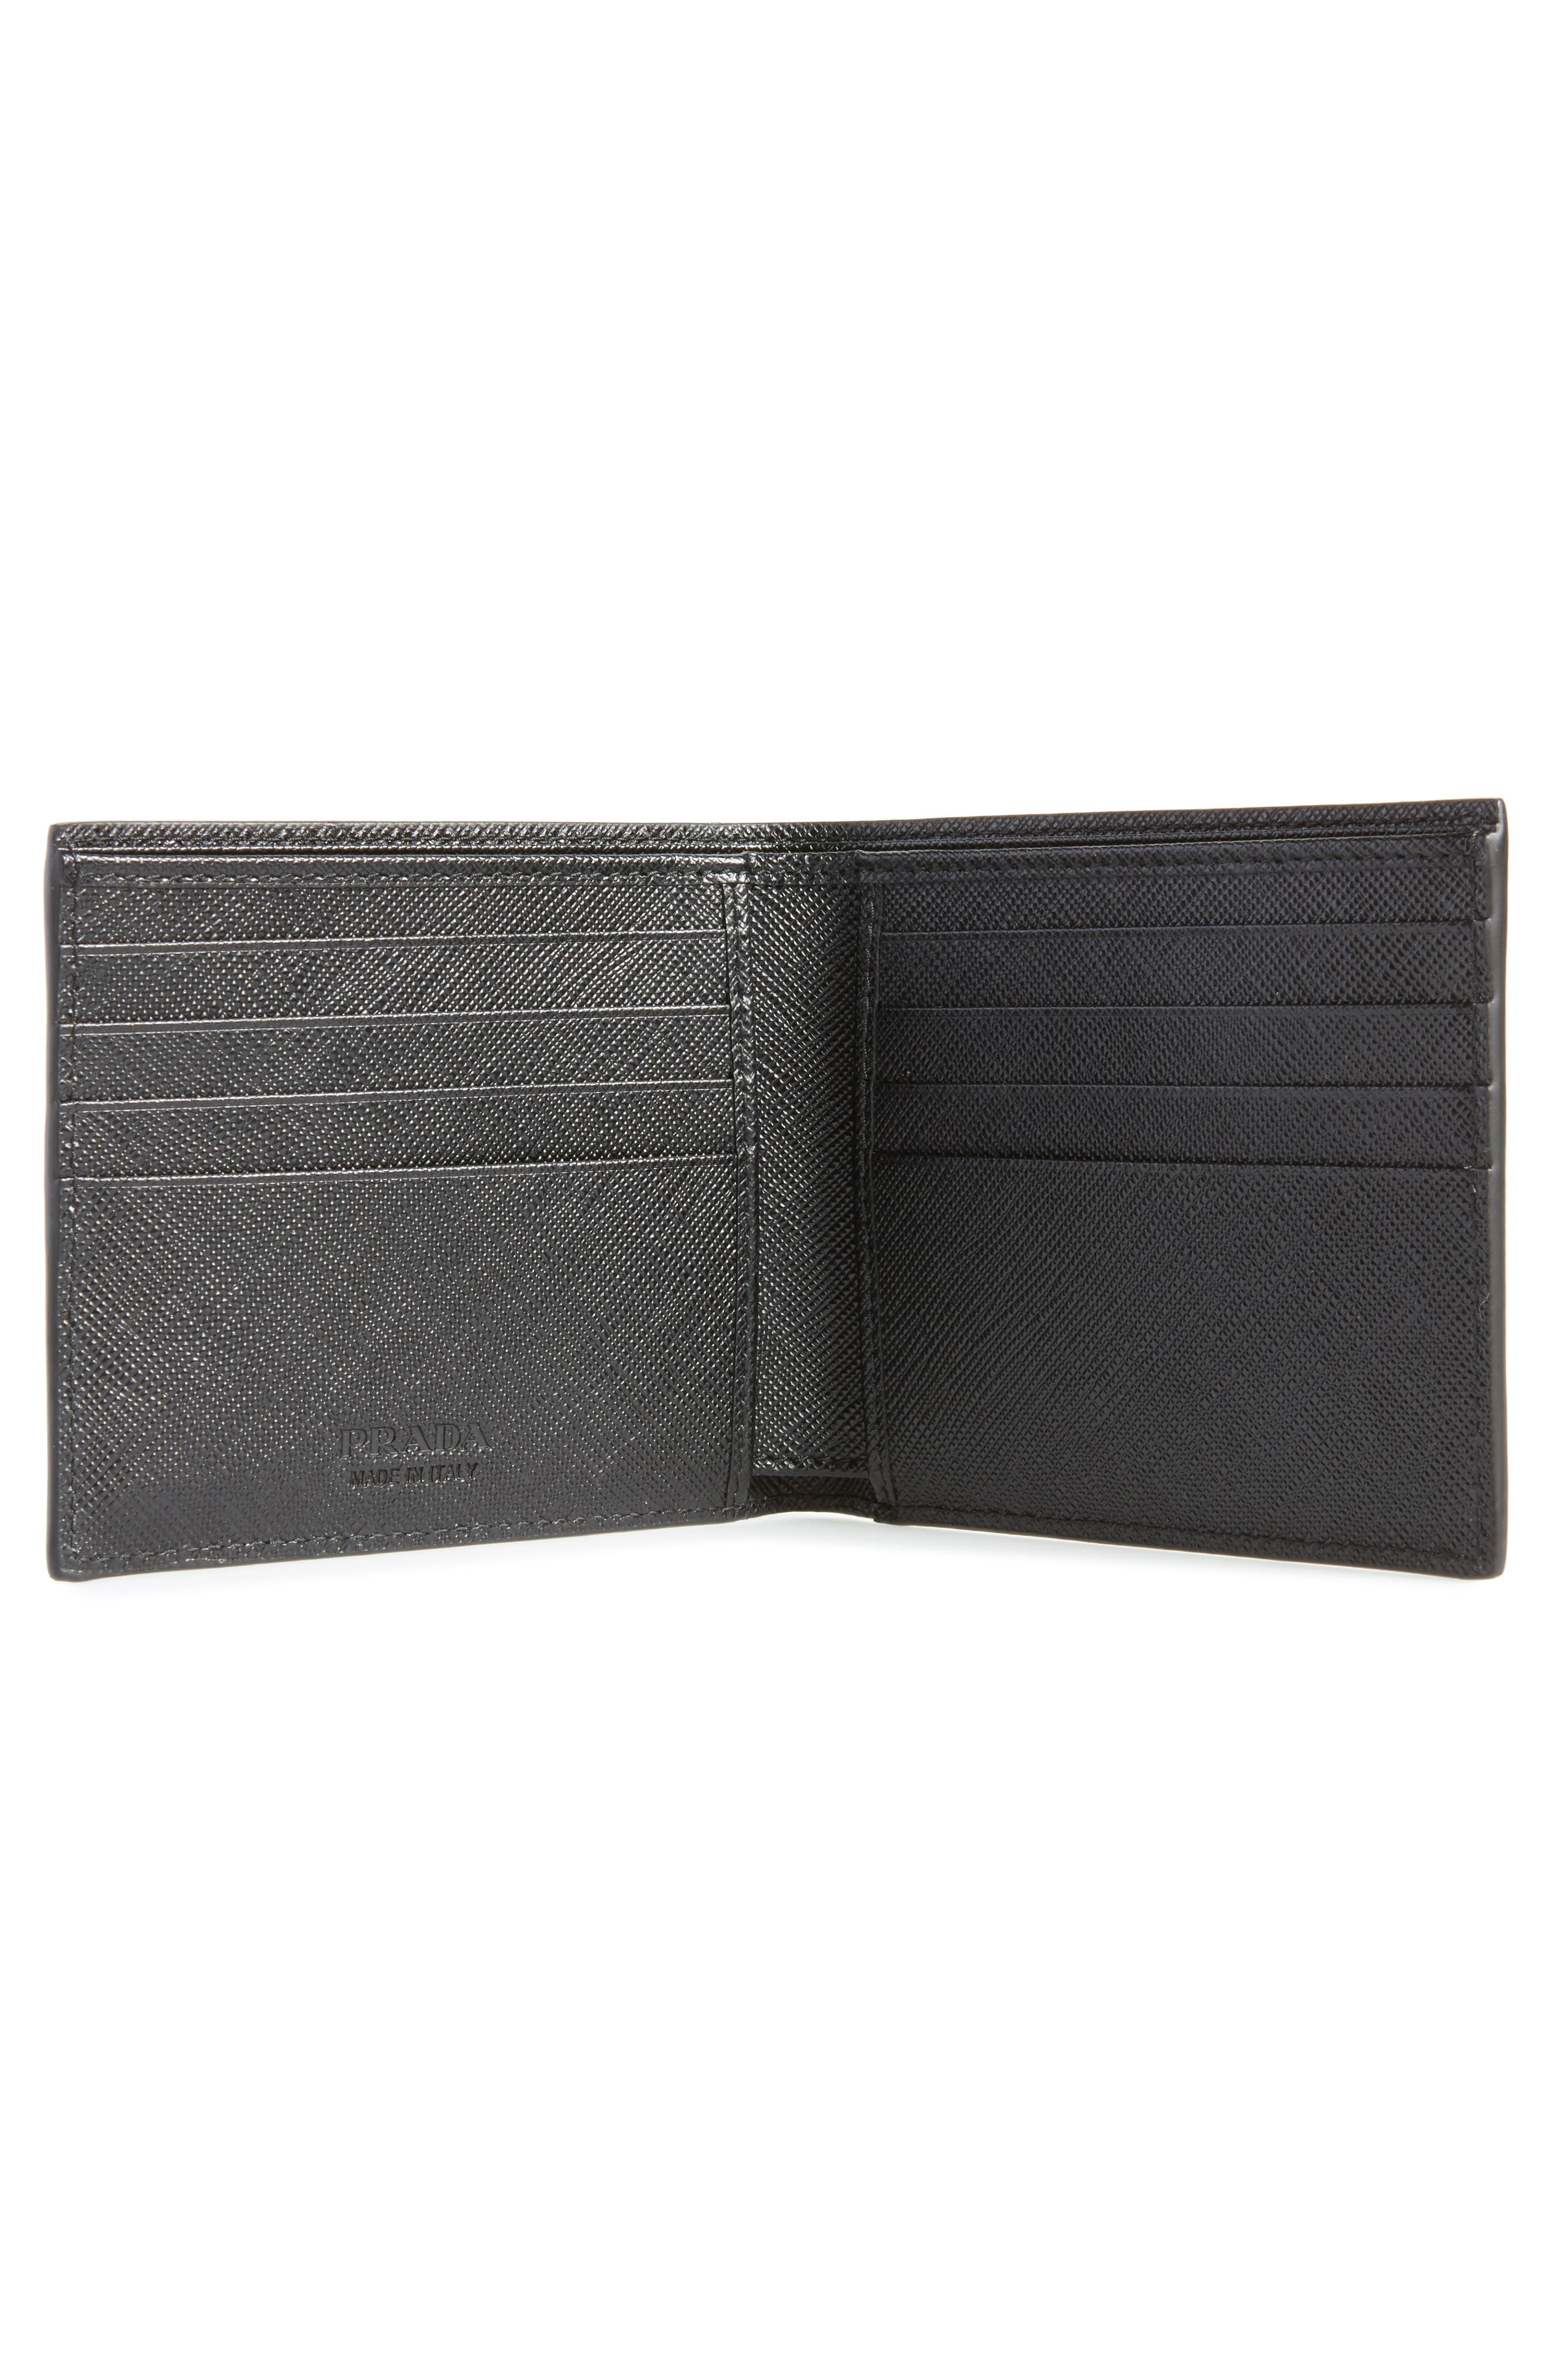 Saffiano Leather Billfold Wallet,                             Alternate thumbnail 2, color,                             002